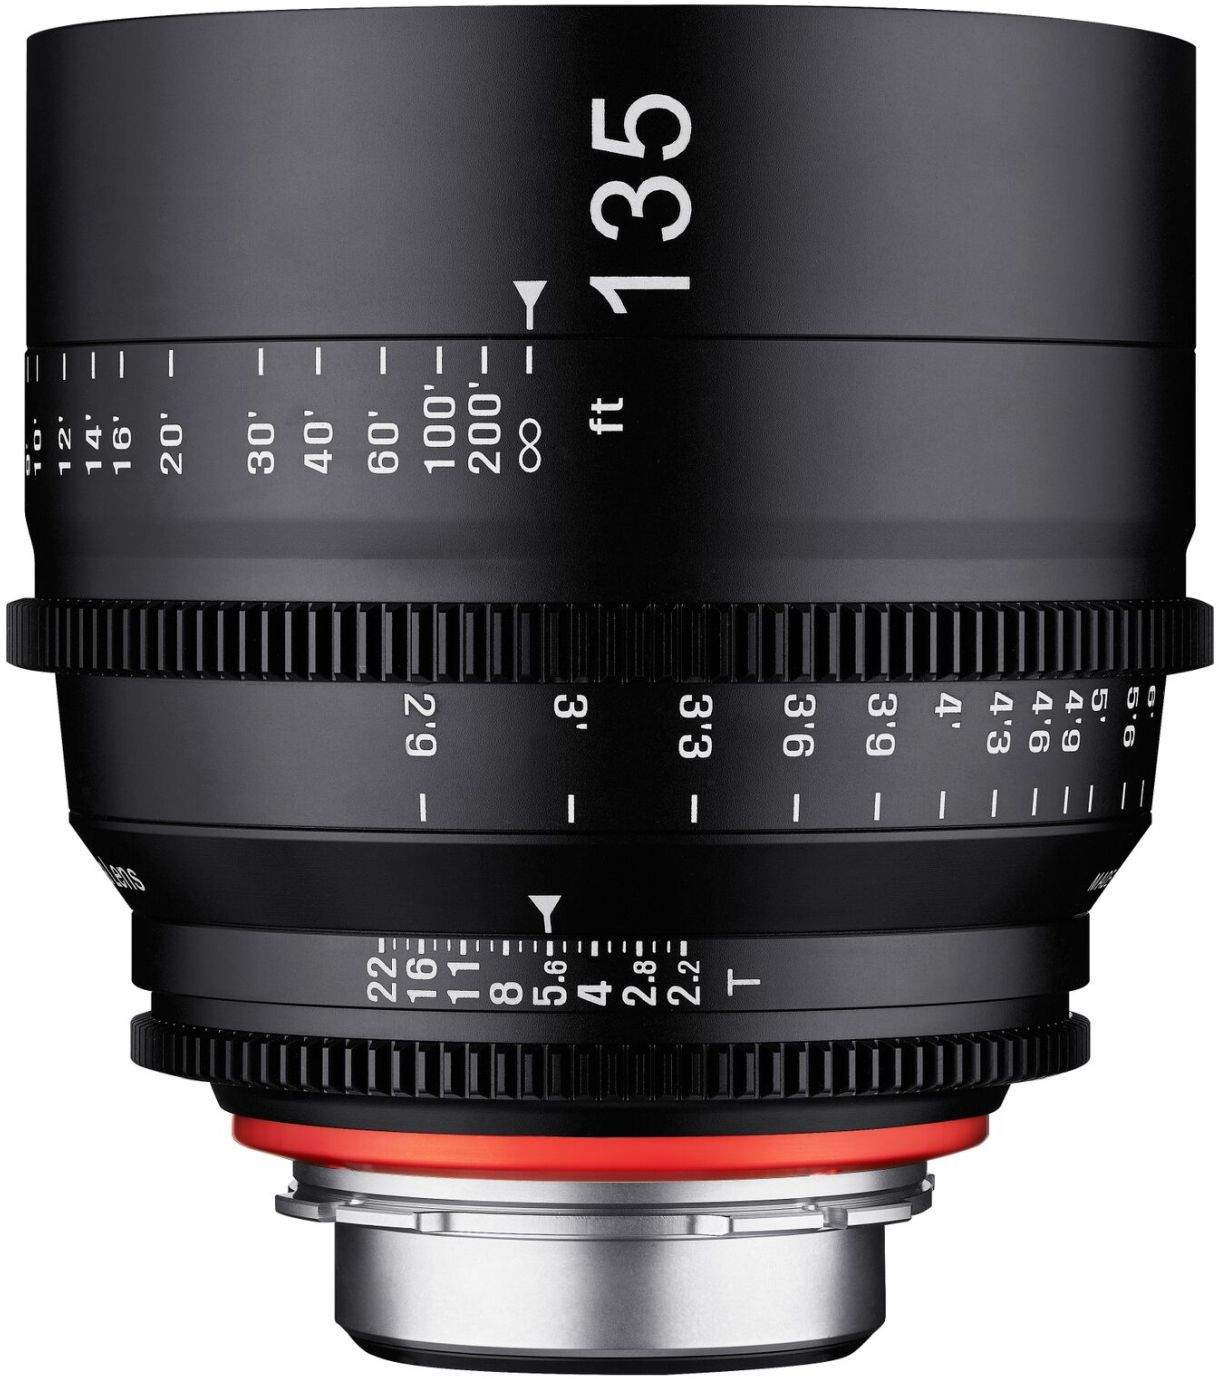 135mm T2.2 XEEN Sony FE Full Frame Cinema Lens main image